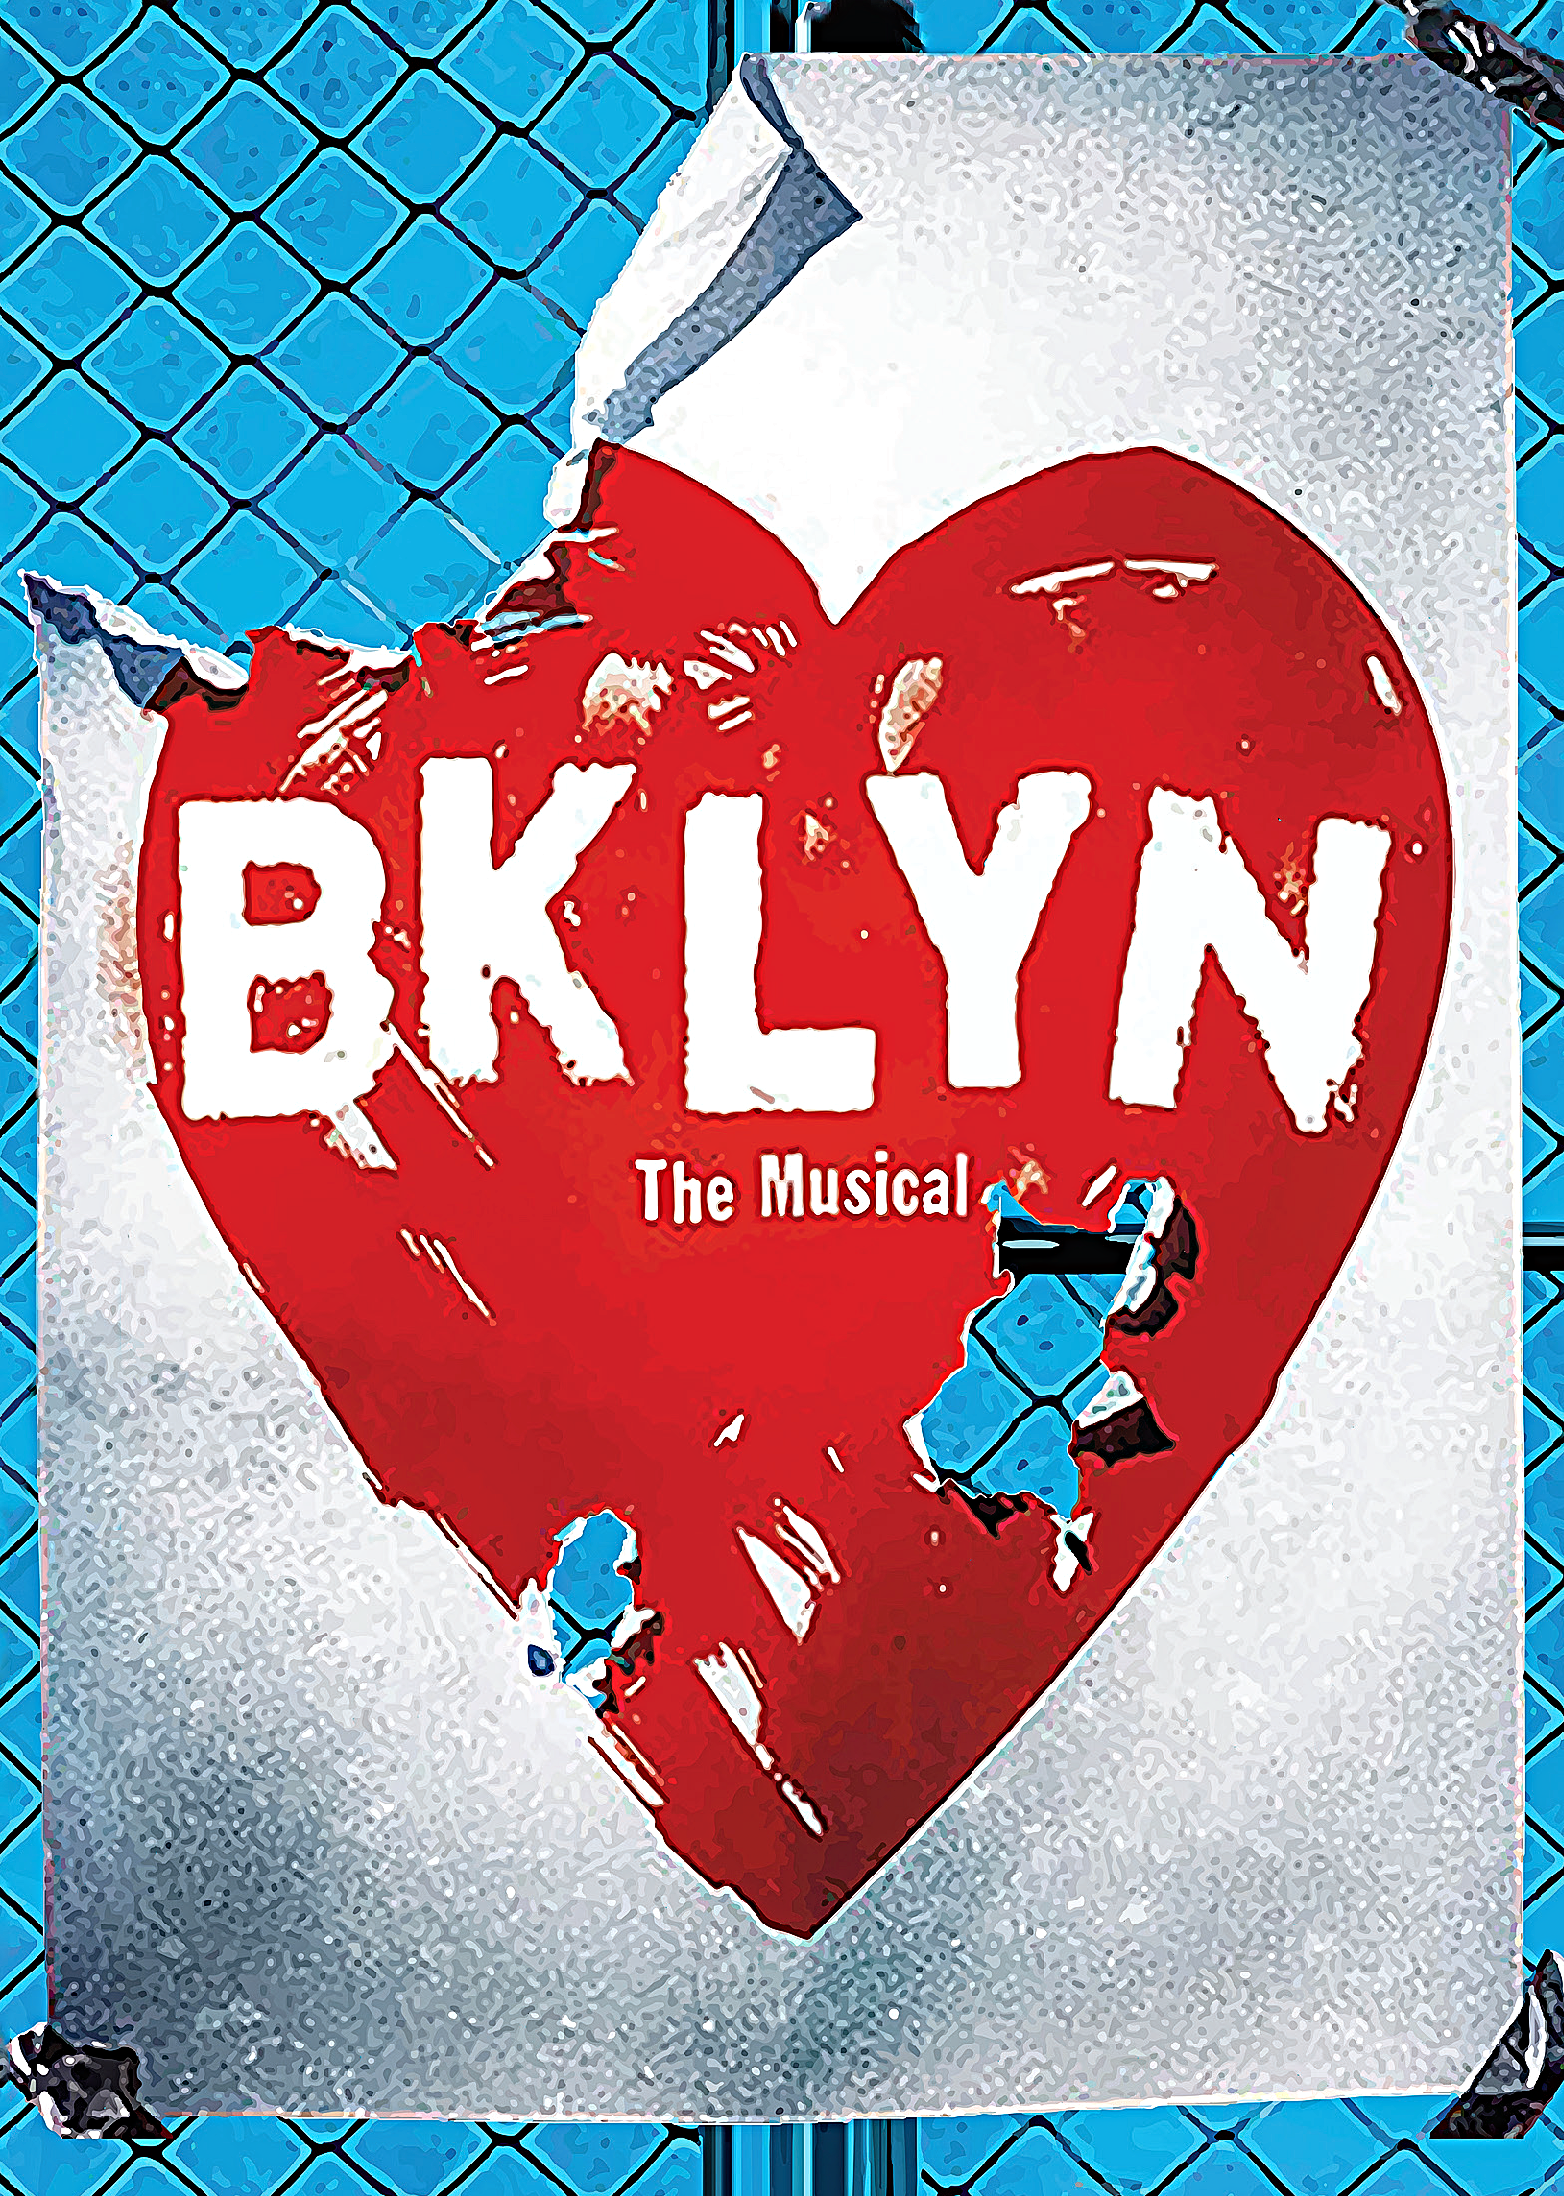 Bklyn poster.png